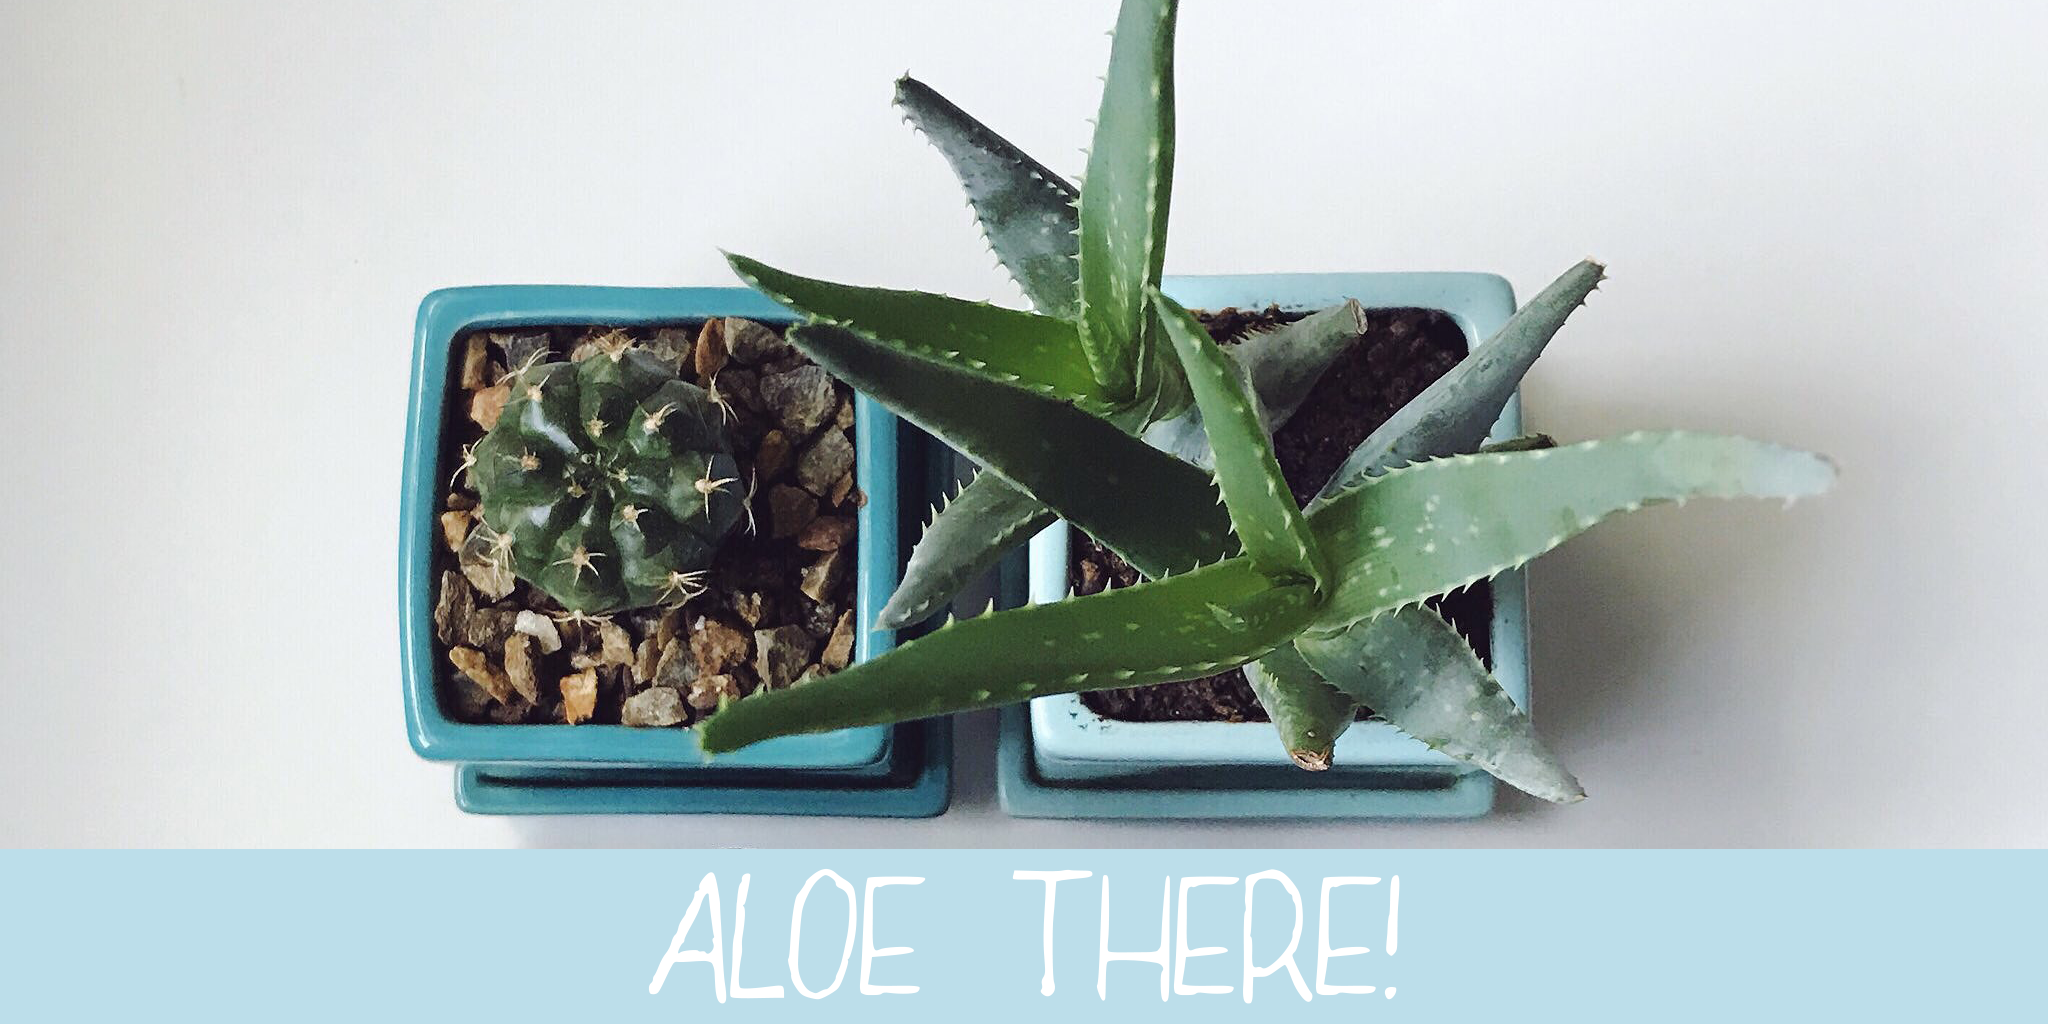 Aloe: The Self Care Community That's Giving You the Tools to Grow